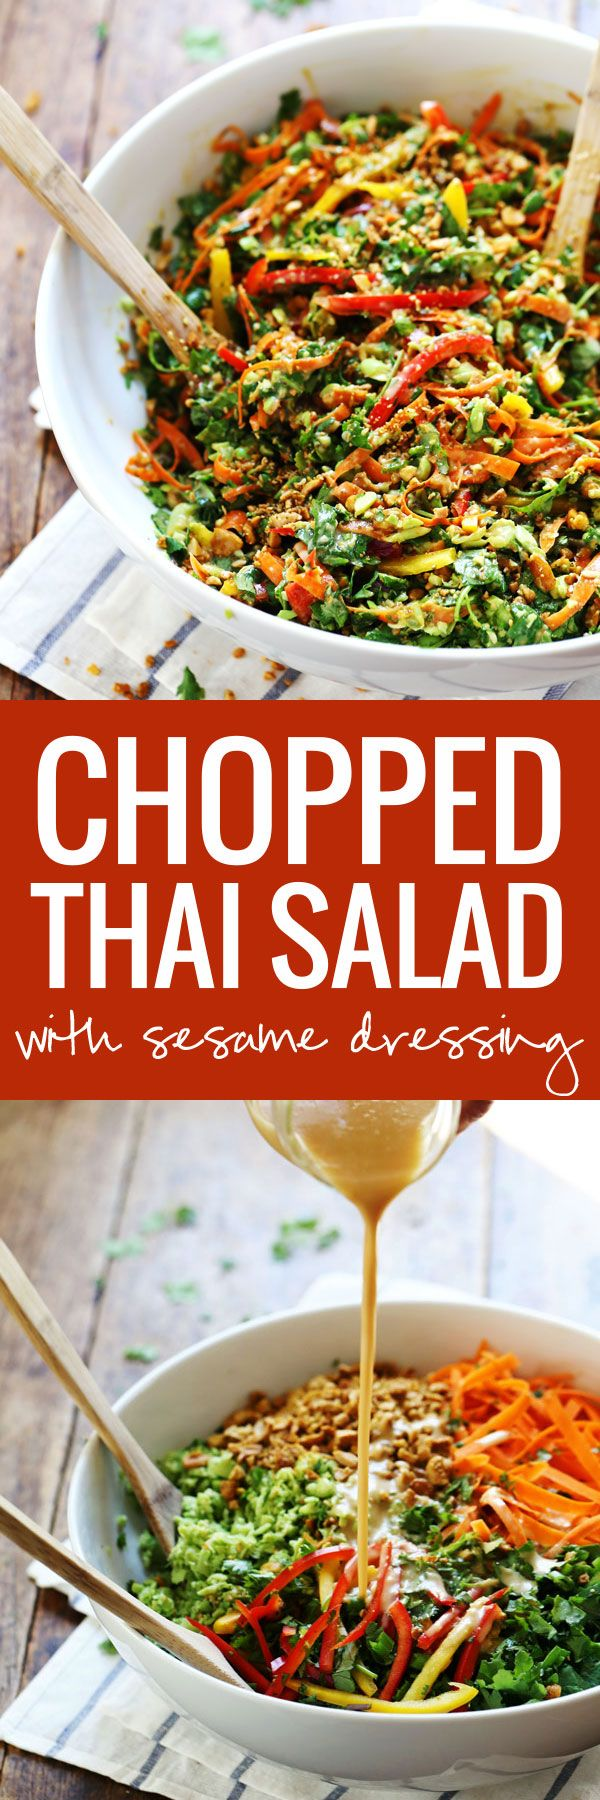 This Chopped Thai Salad with Sesame Garlic Dressing is THE BEST! A rainbow of power veggies with a yummy homemade dressing.